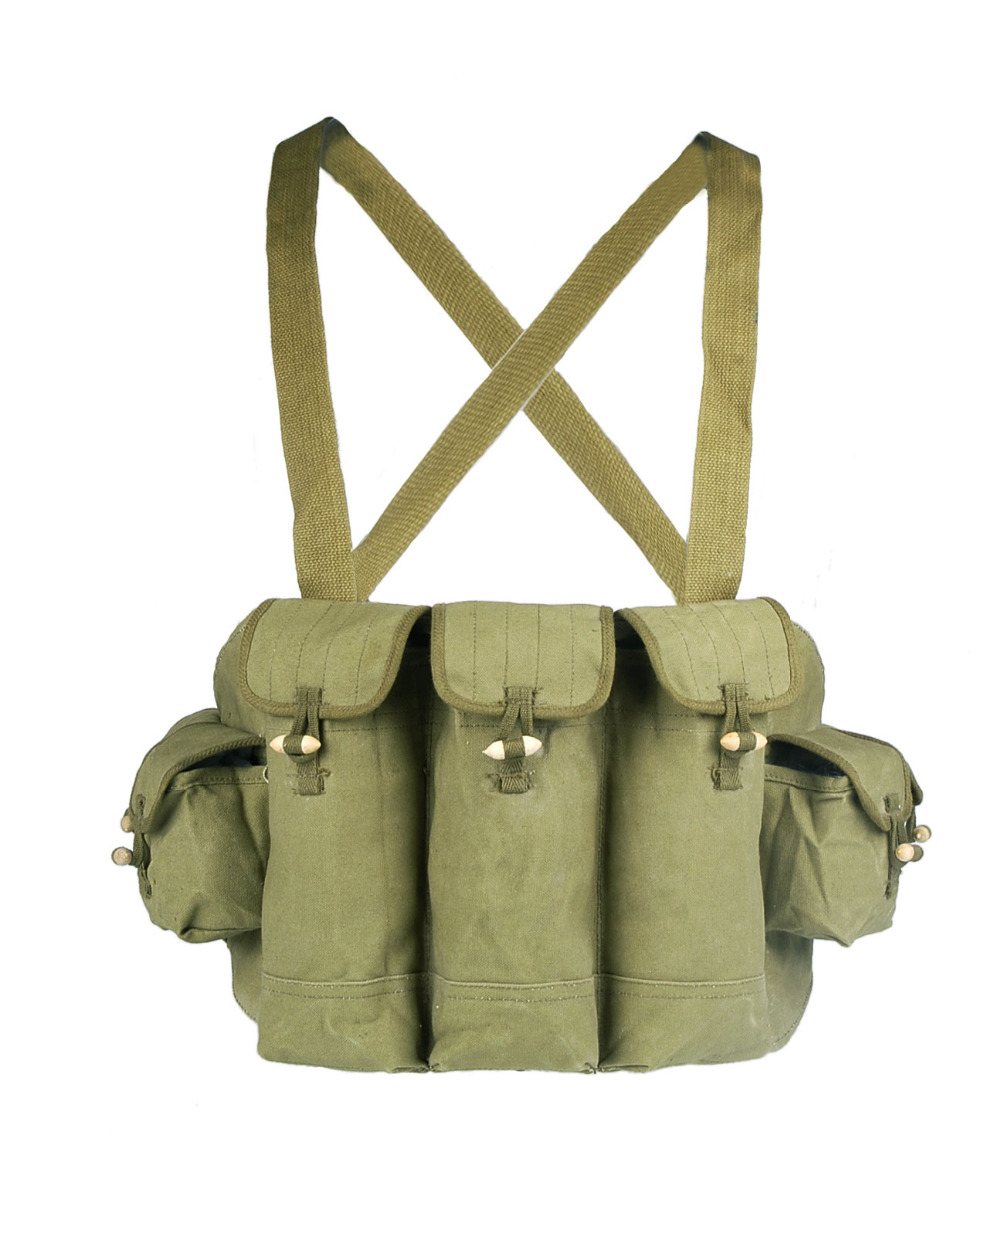 Loklode Chinese Military Surplus AK47 Chest Pouch Rig Ammo Mag Bandolier Type 56